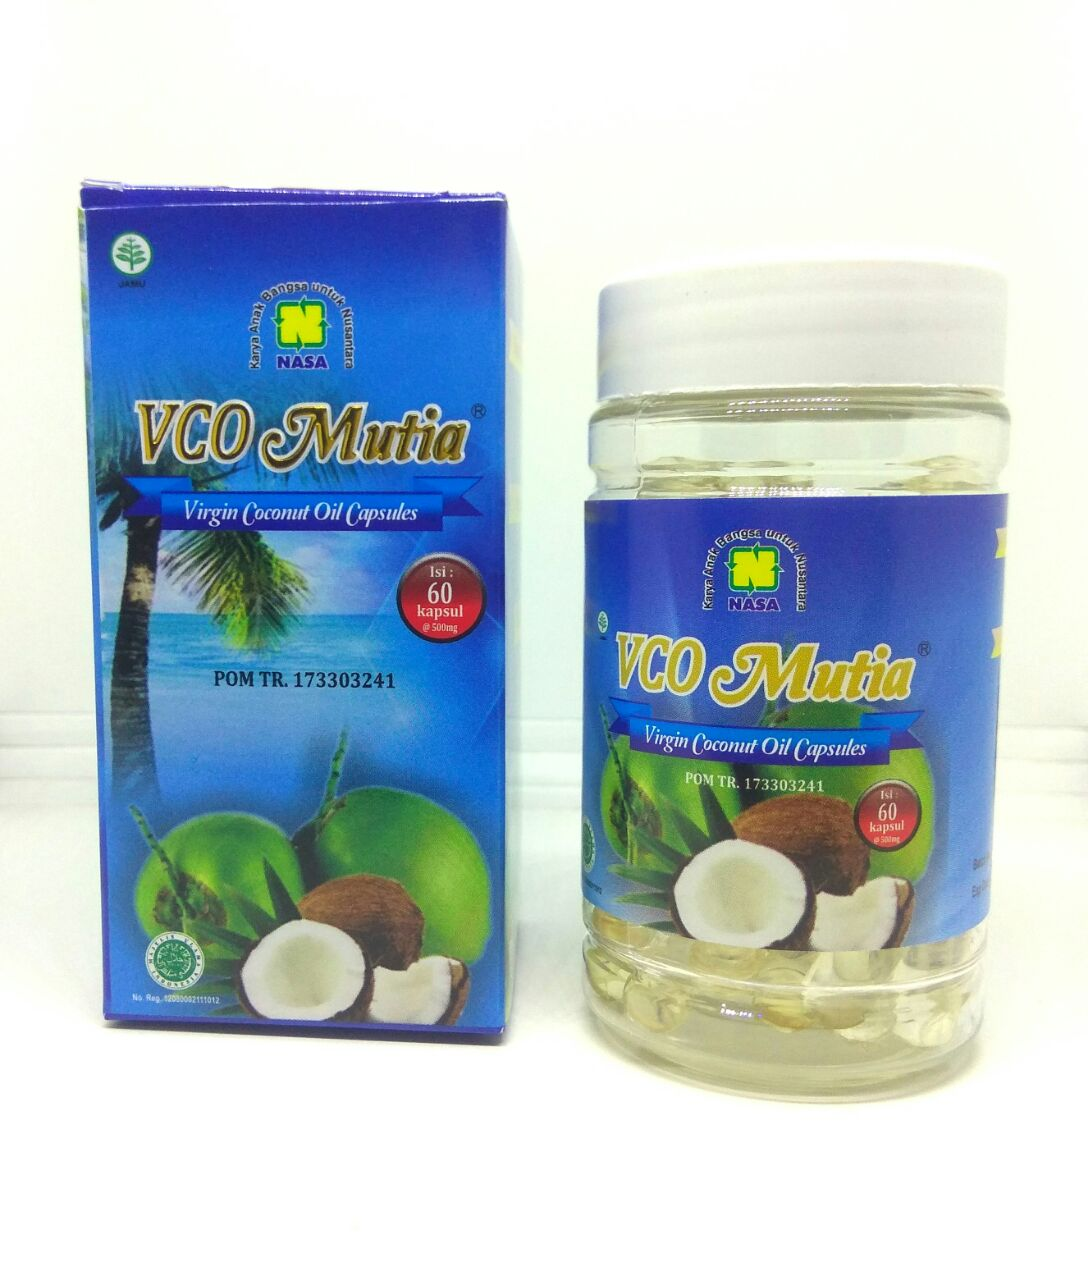 VCO MUTIA Virgin Coconut Oil Capsule Natural Nusantara